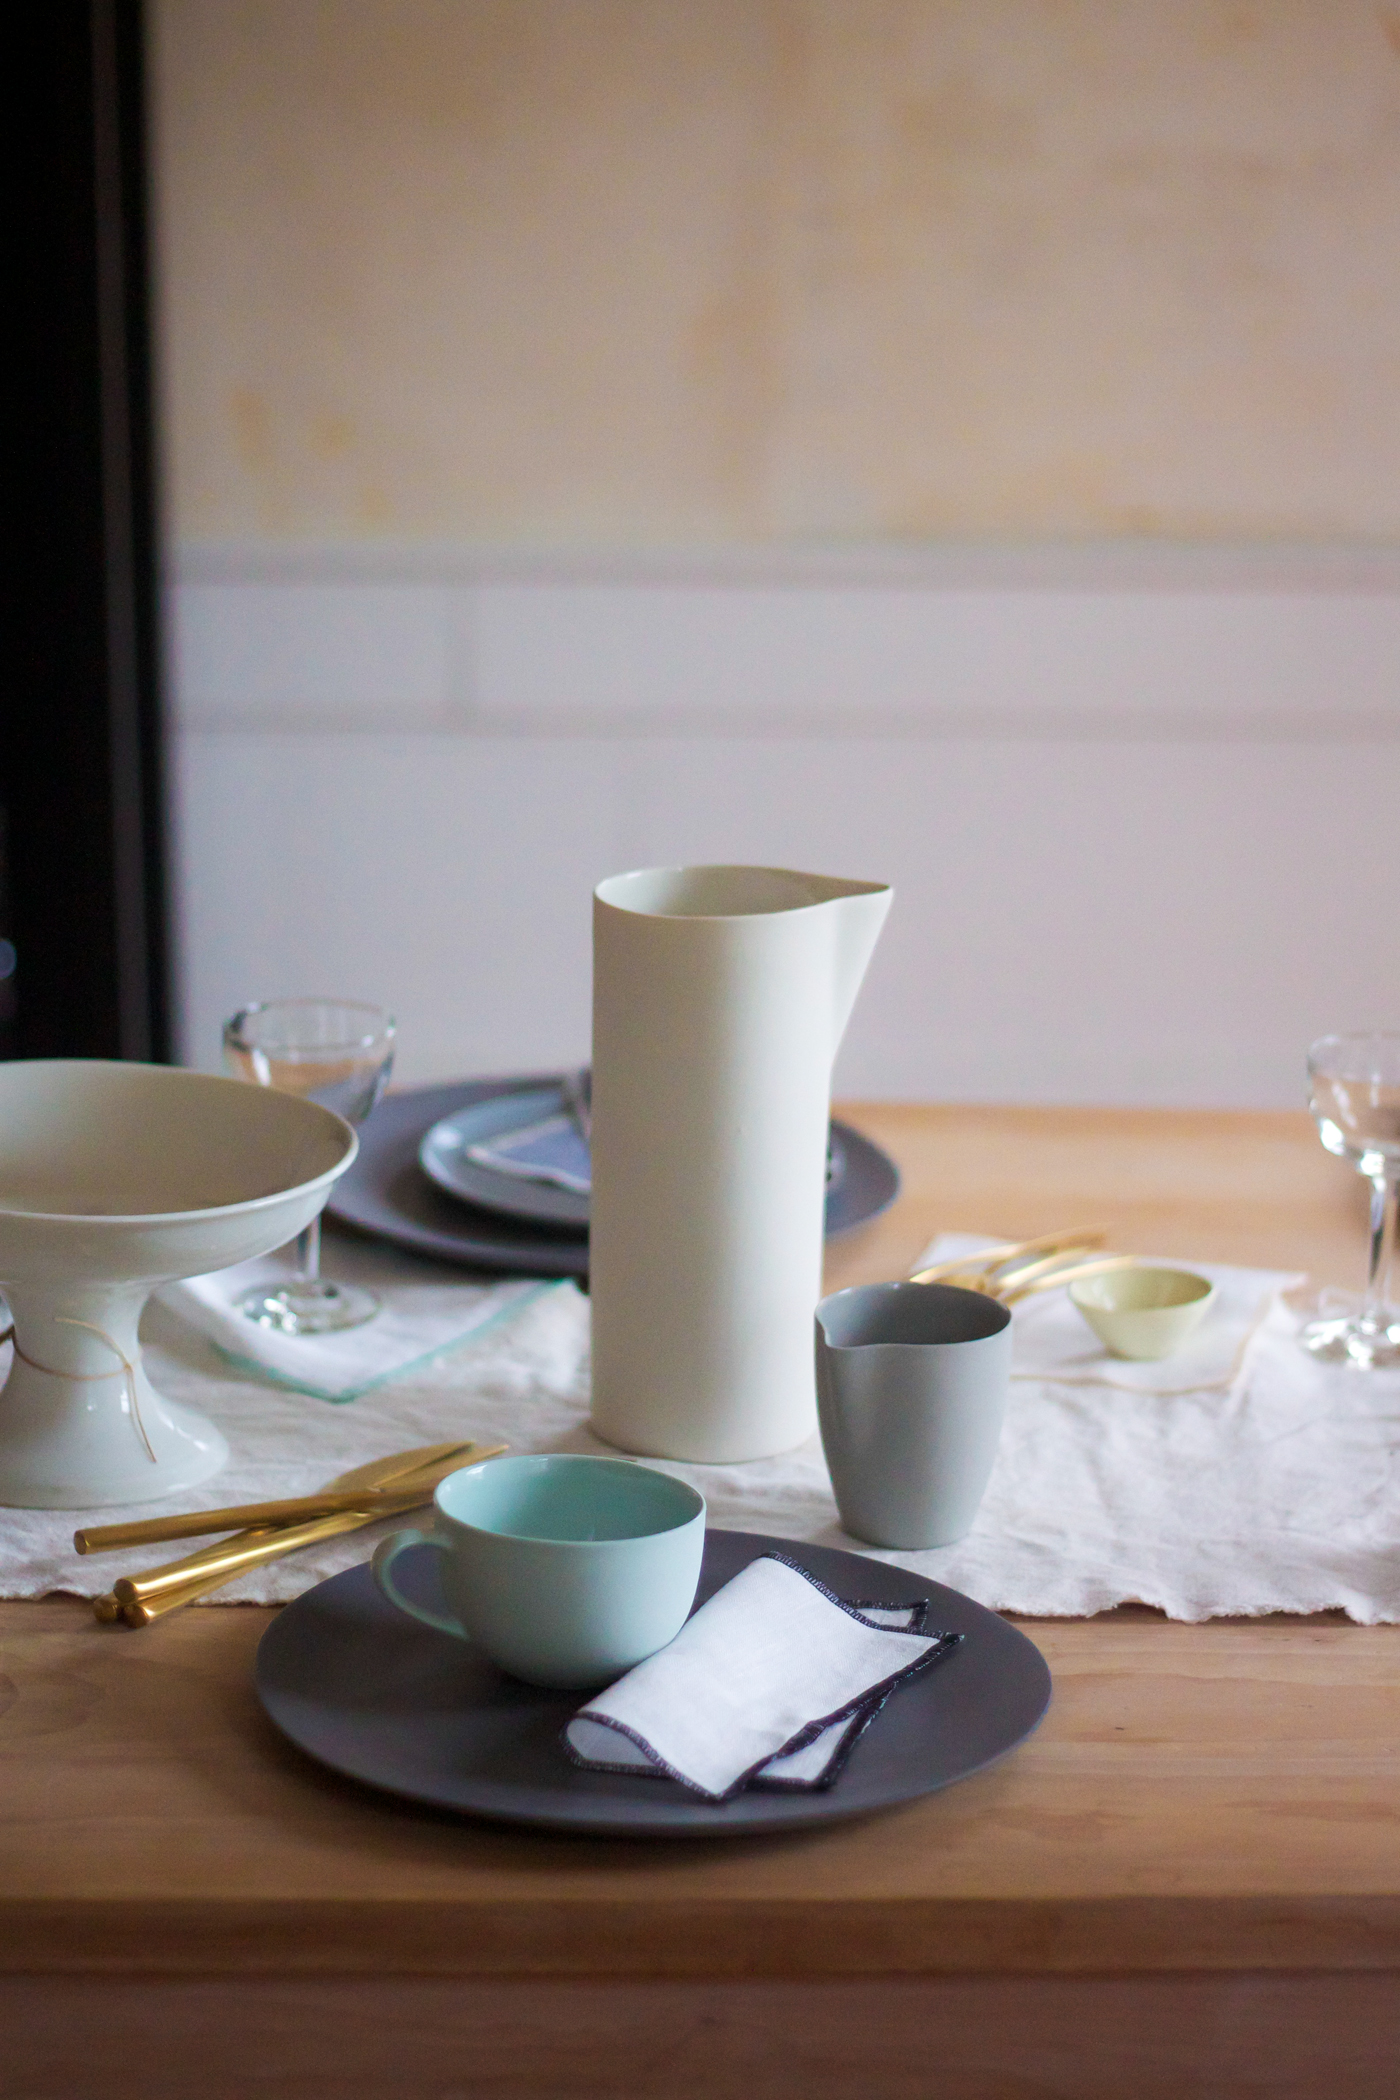 Mothers Day Table with Everyday Napkins, MUD carafe, by Justine Hand for Remodelista